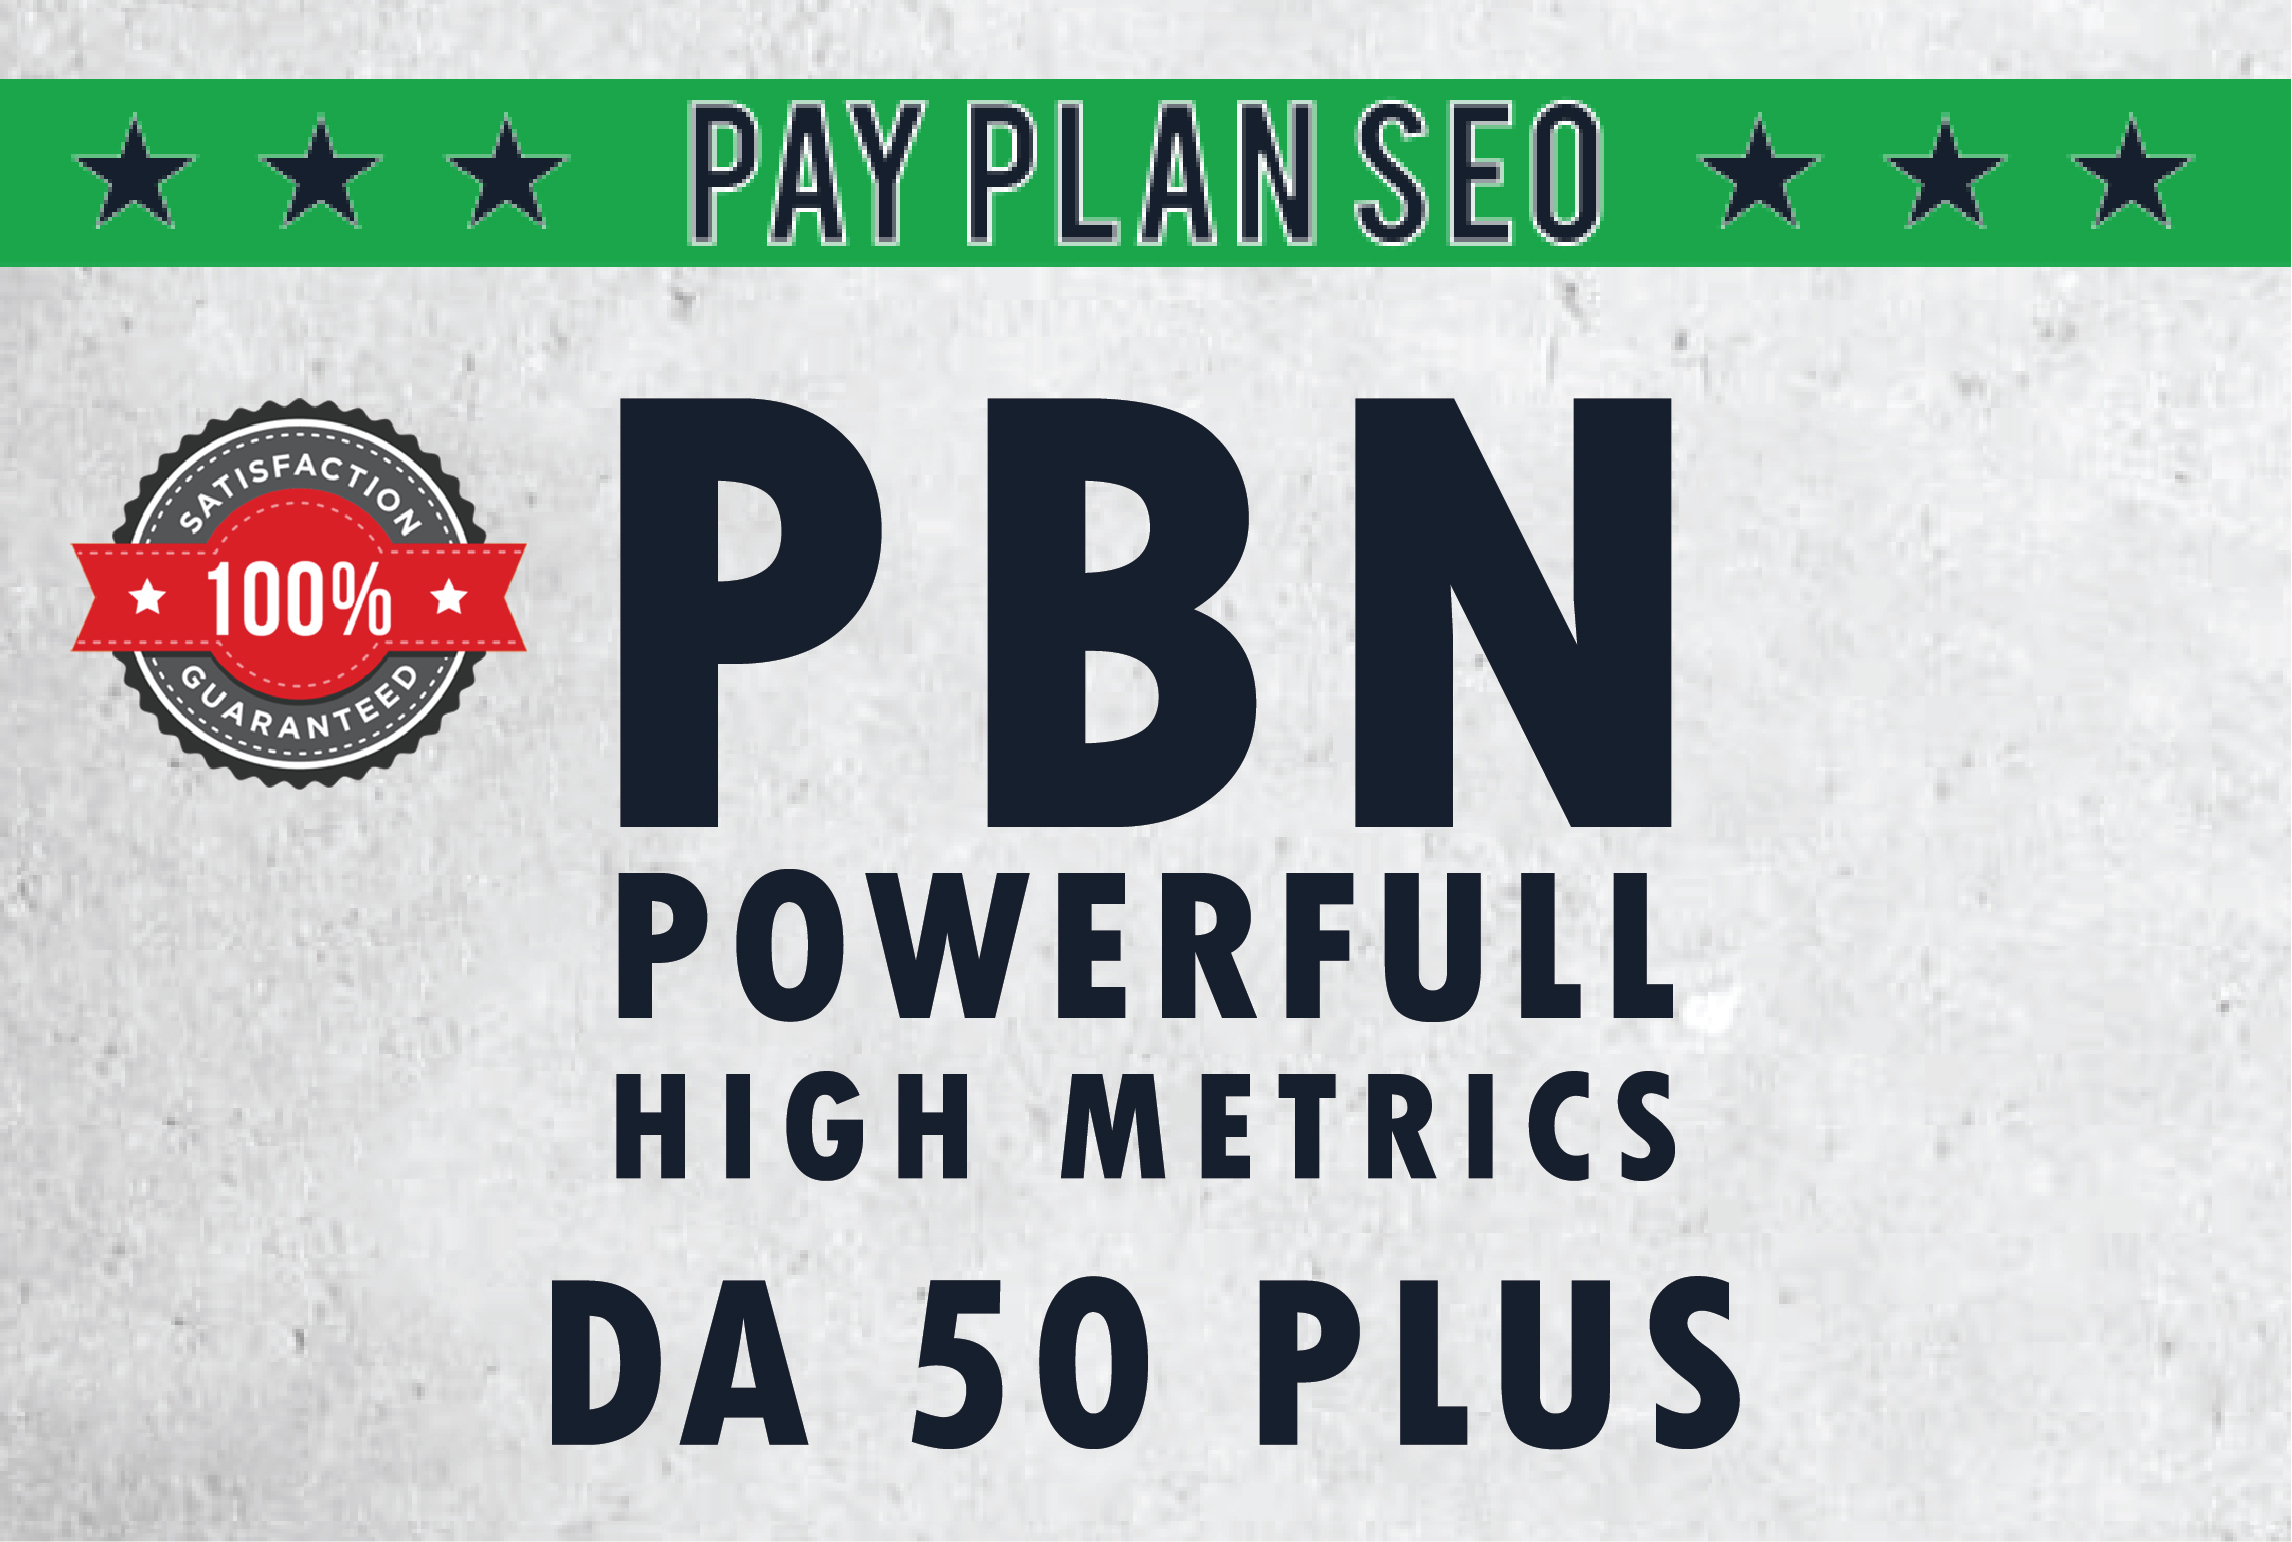 I Will Provide You 10 Powerfull High Authority PBNs Backlinks DA 50+ for 13